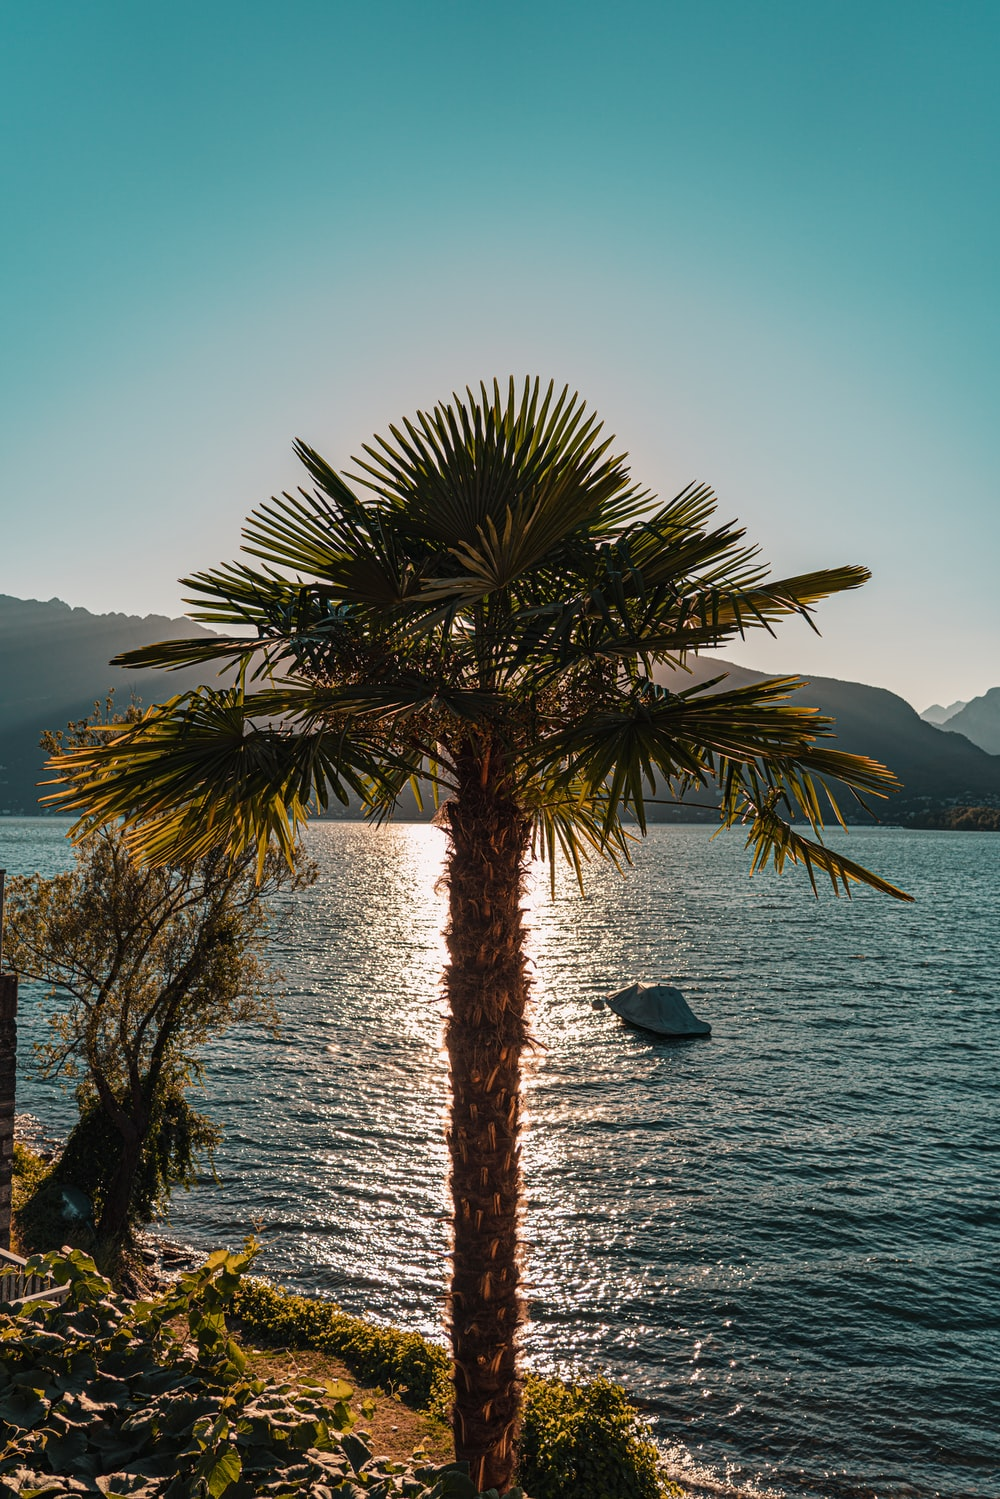 palm tree near body of water during daytime